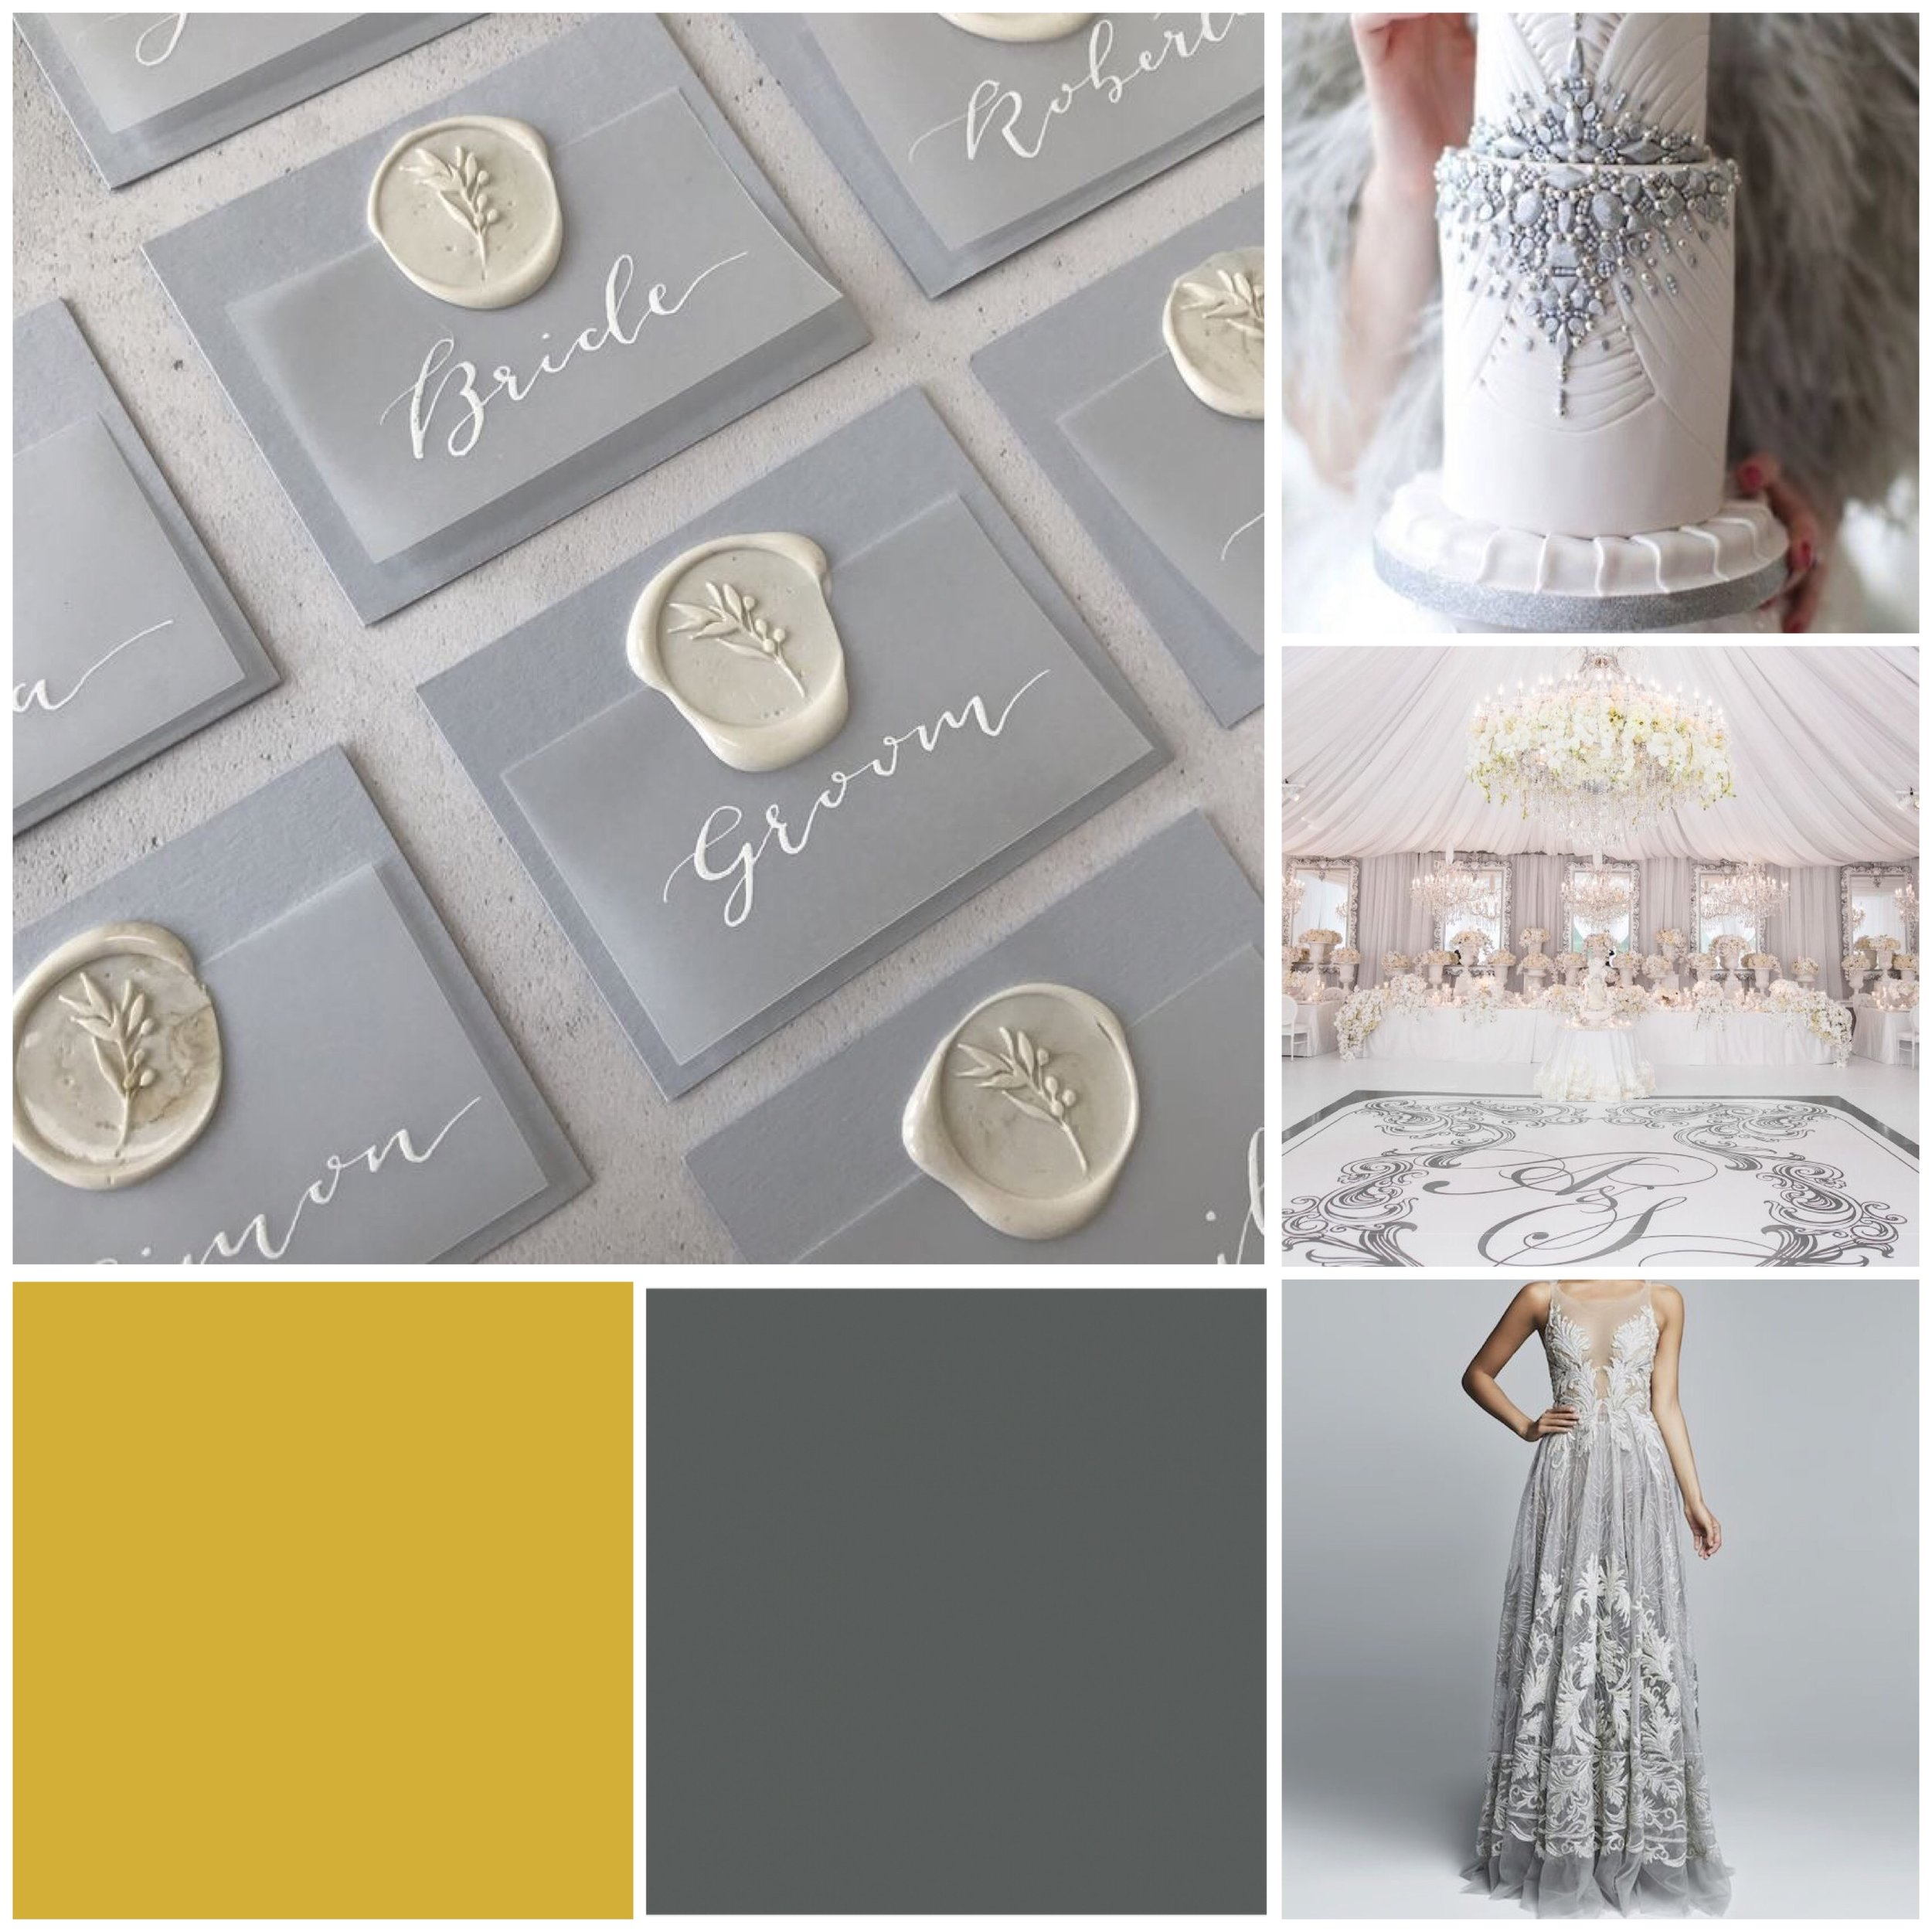 Mercury & Gold Moodboard for your wedding inspiration.